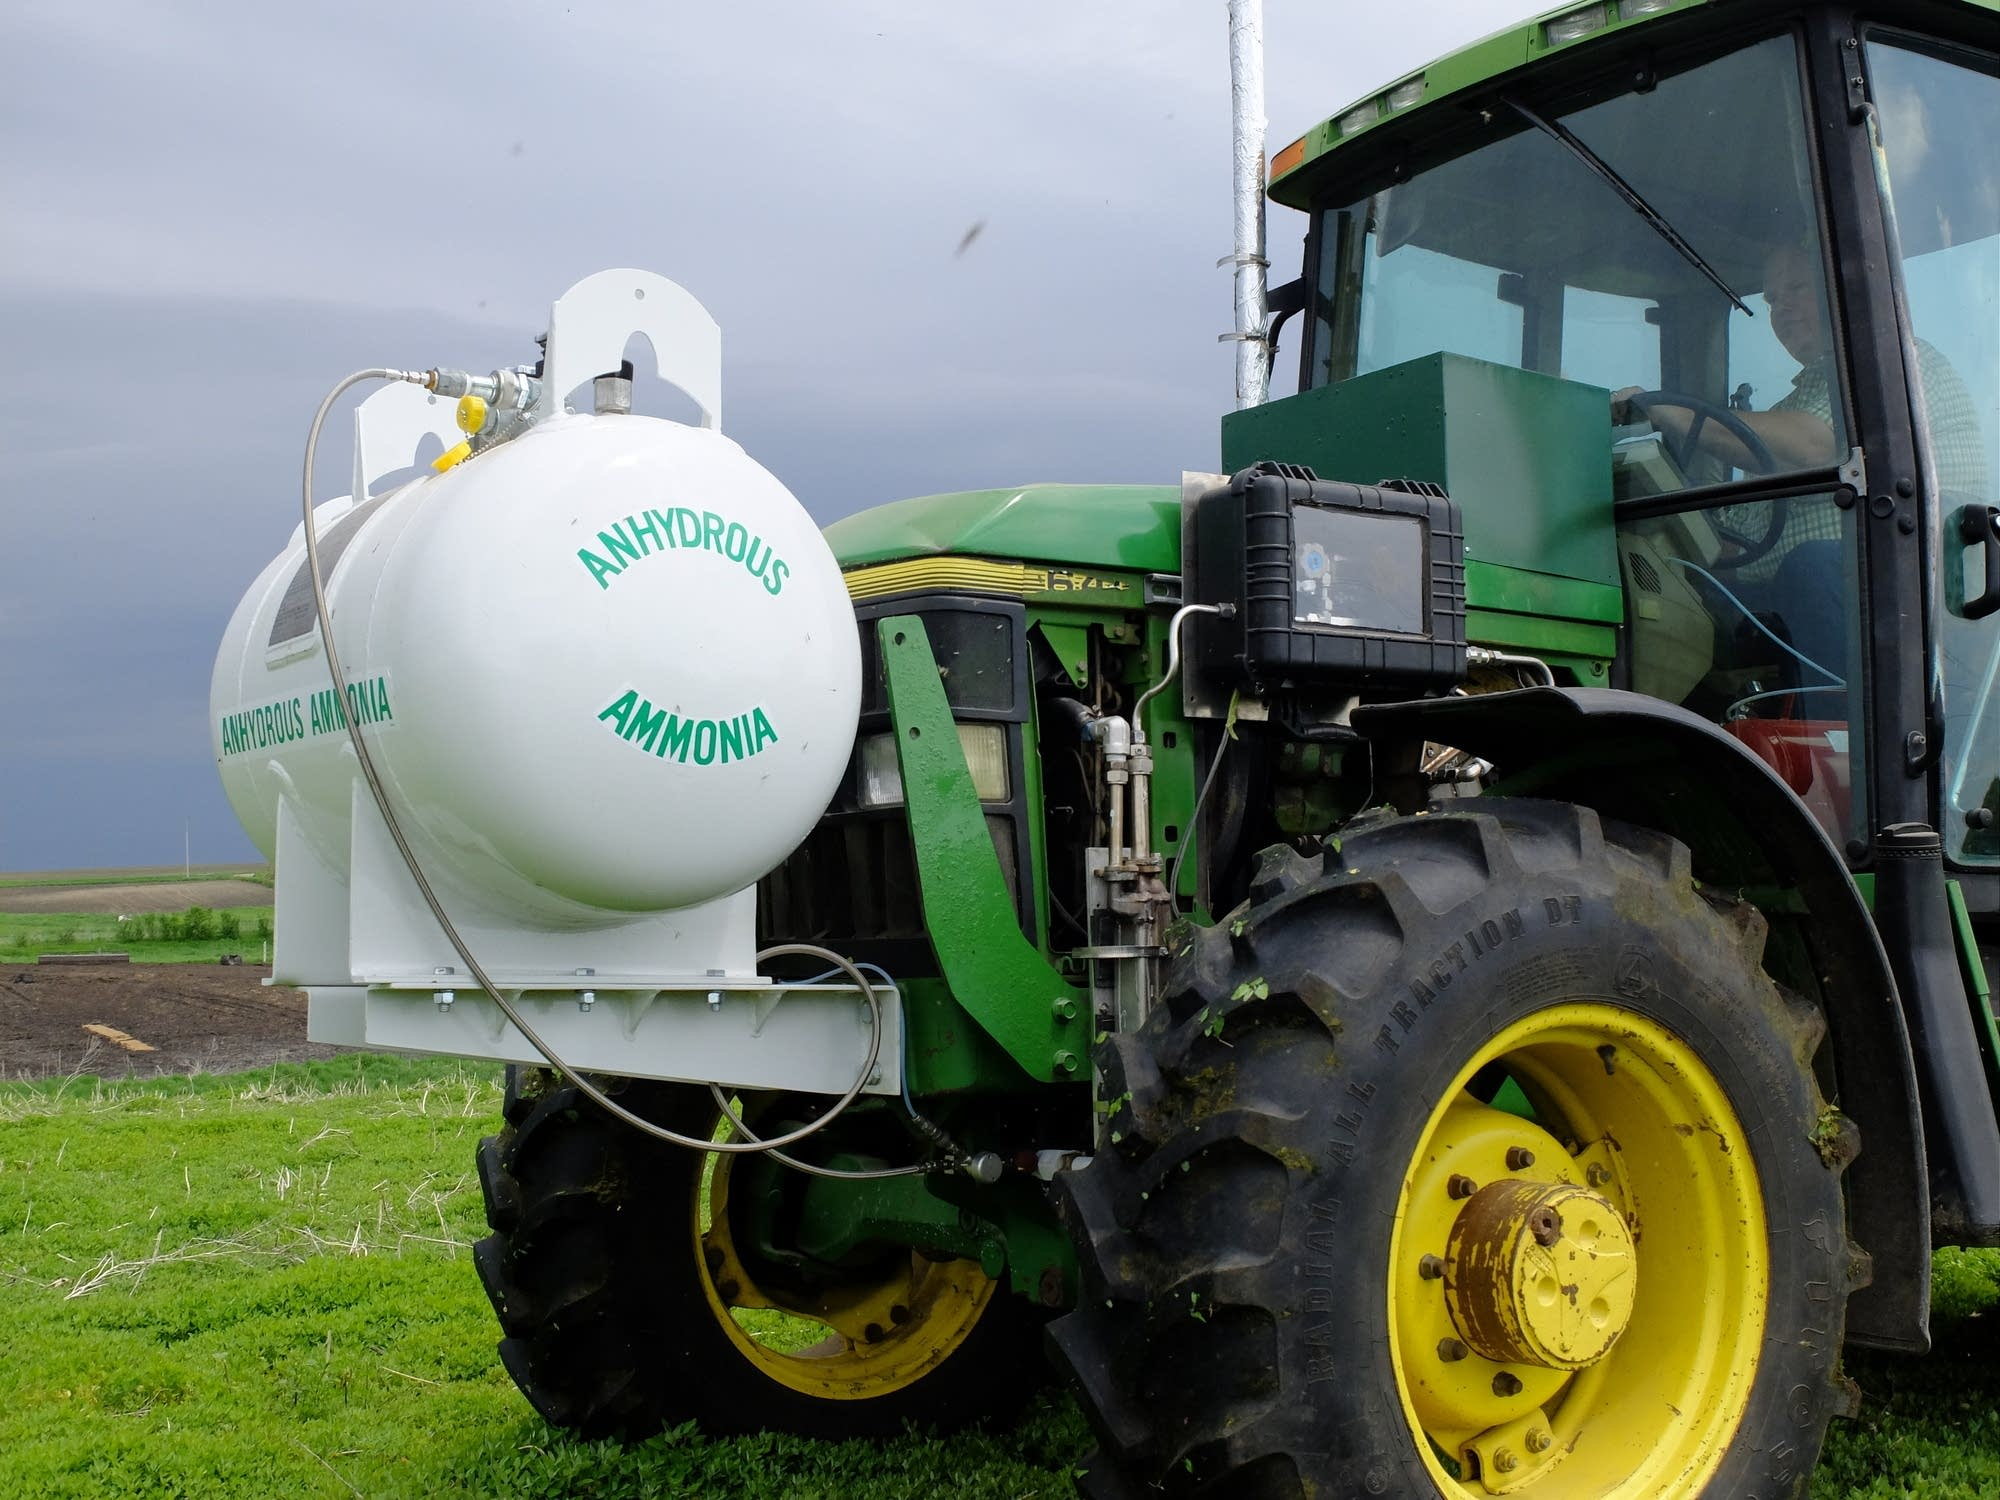 An experimental tractor designed to run on diesel fuel and ammonia.